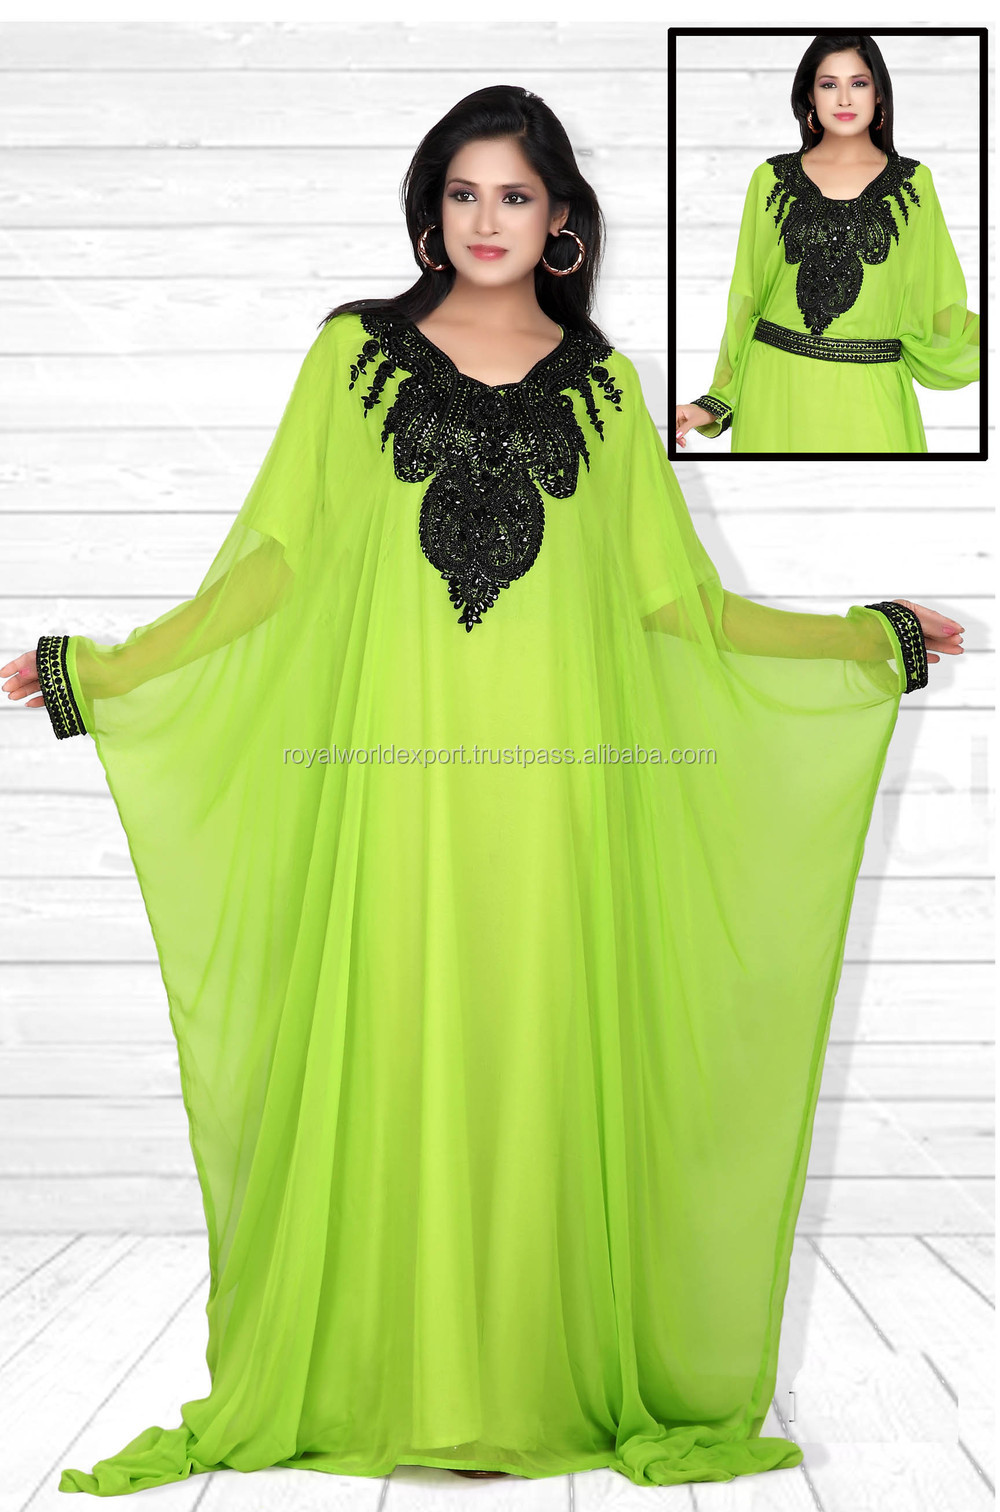 197b149cef Royal jilbab islamic abaya wholesale abaya muslim burkha women party dress  hijab islamic women clothing pakistani